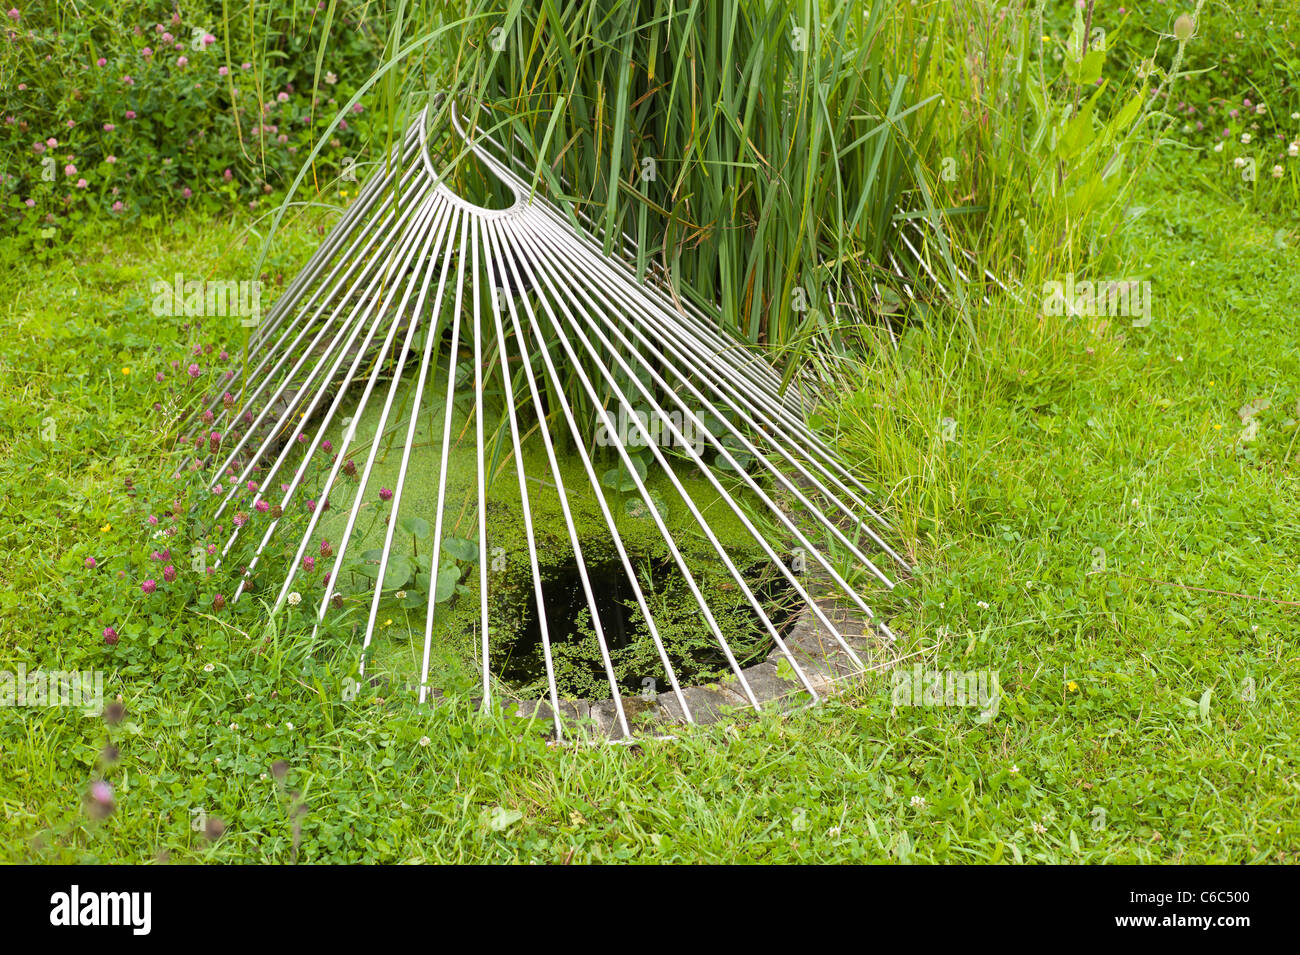 Unusual artistic protective grille around a small pool of water - Stock Image